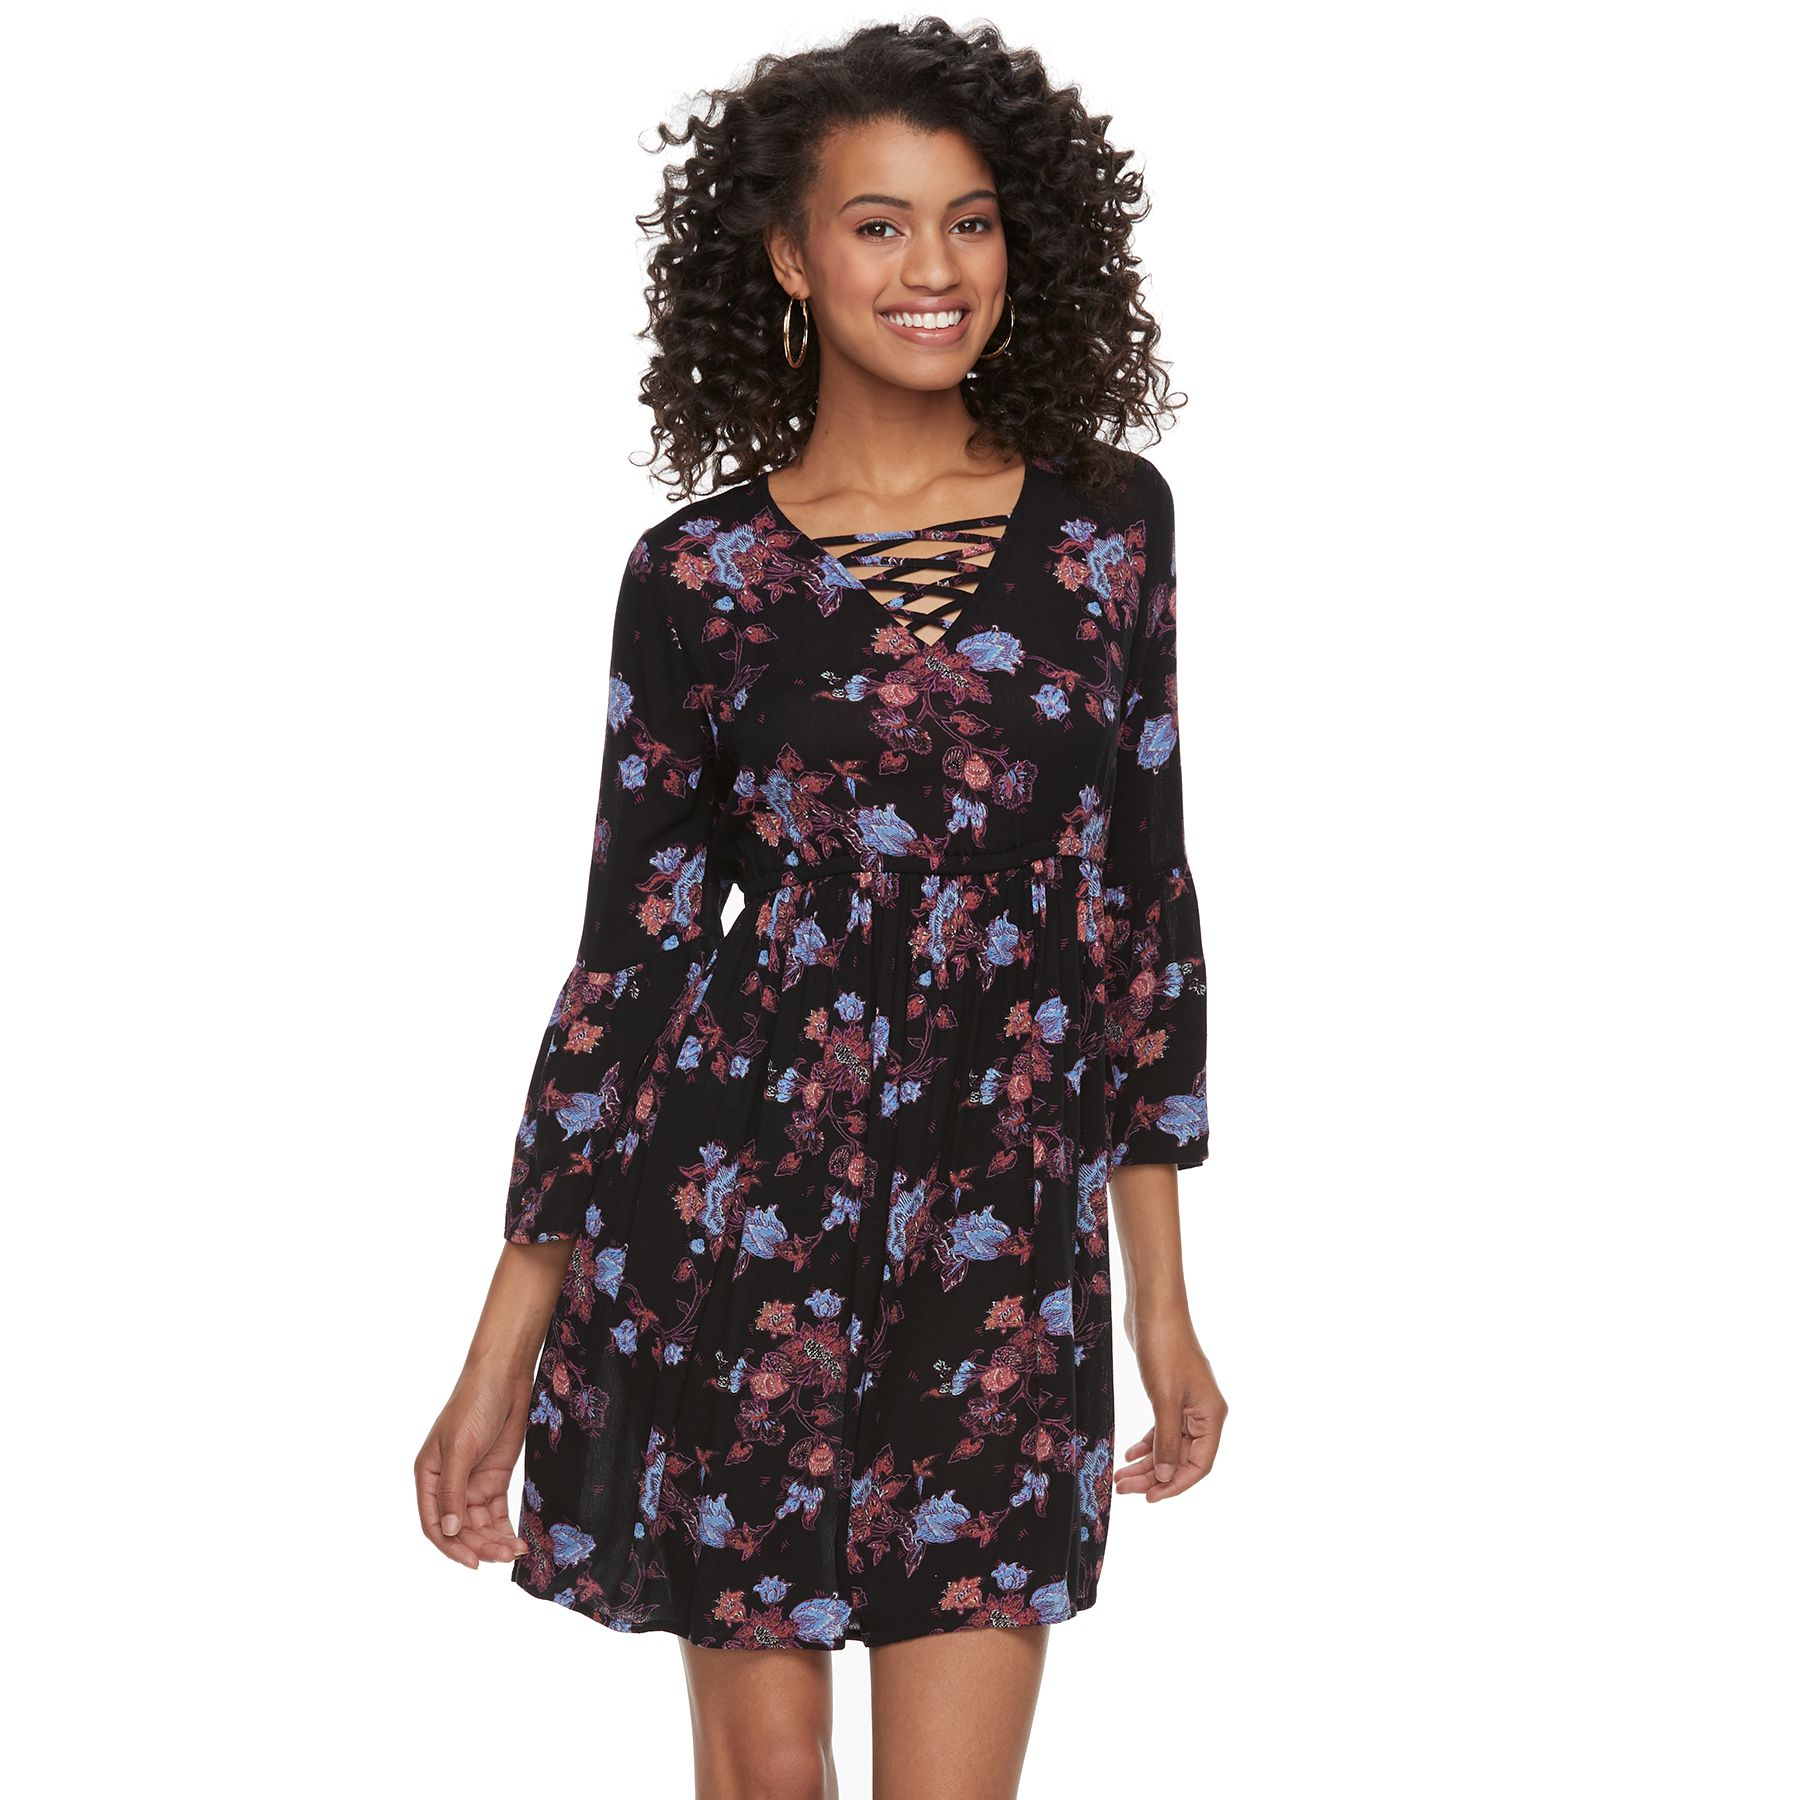 Juniors casual belted dresses fashion